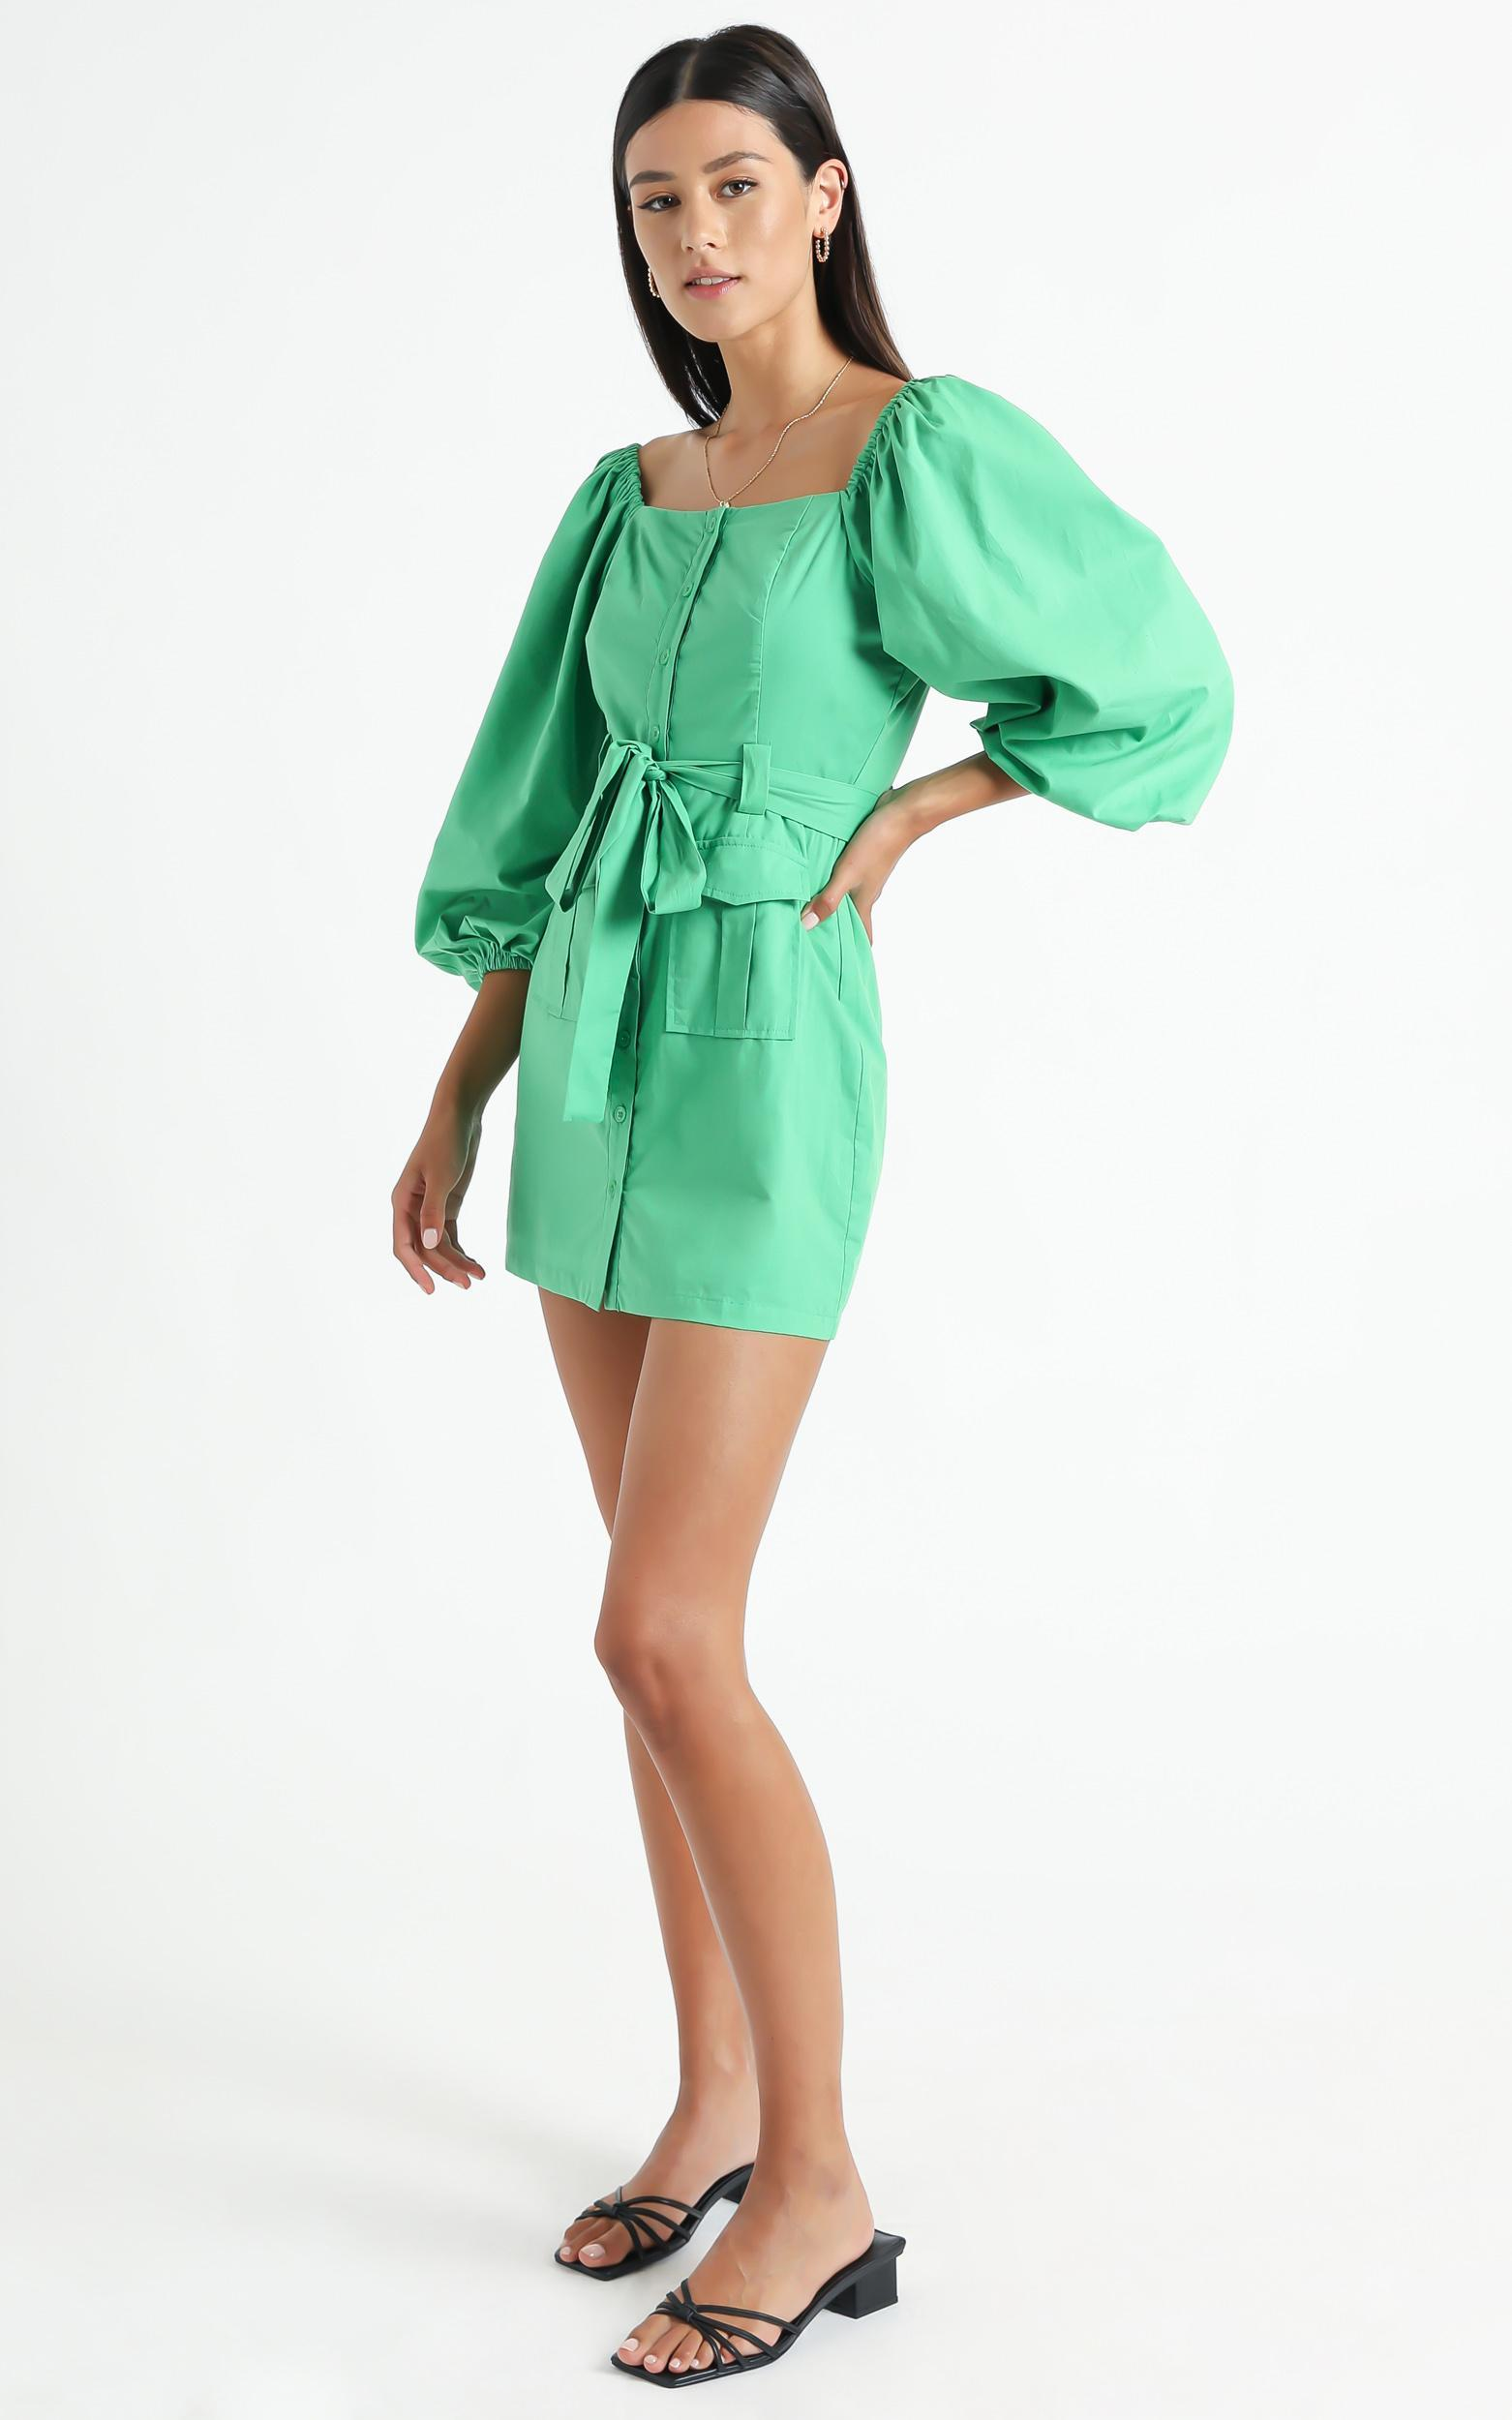 Lahaina Dress in Green - 6 (XS), Green, hi-res image number null